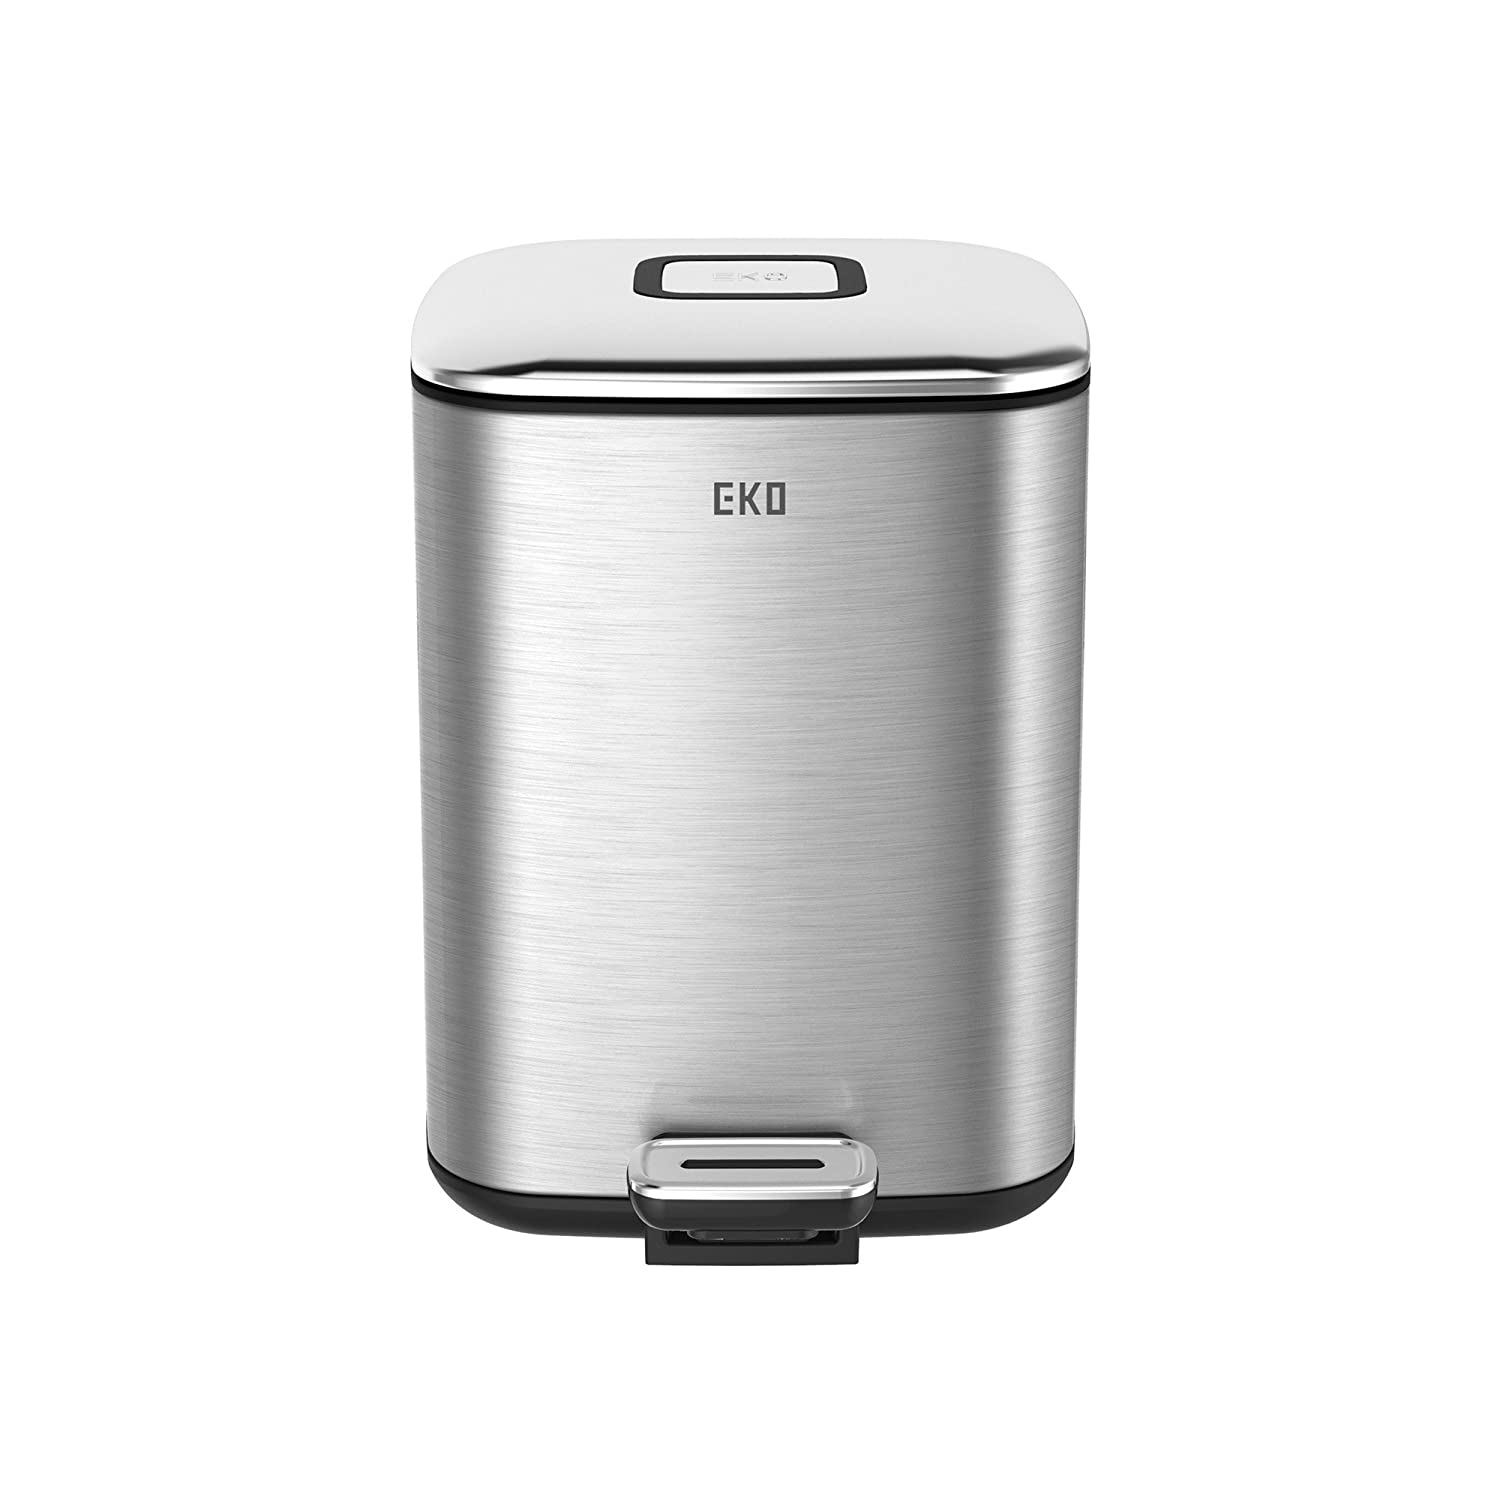 Amazon.com: EKO 93883-1 Square 8.4 Gallon Stainless Steel Step ...